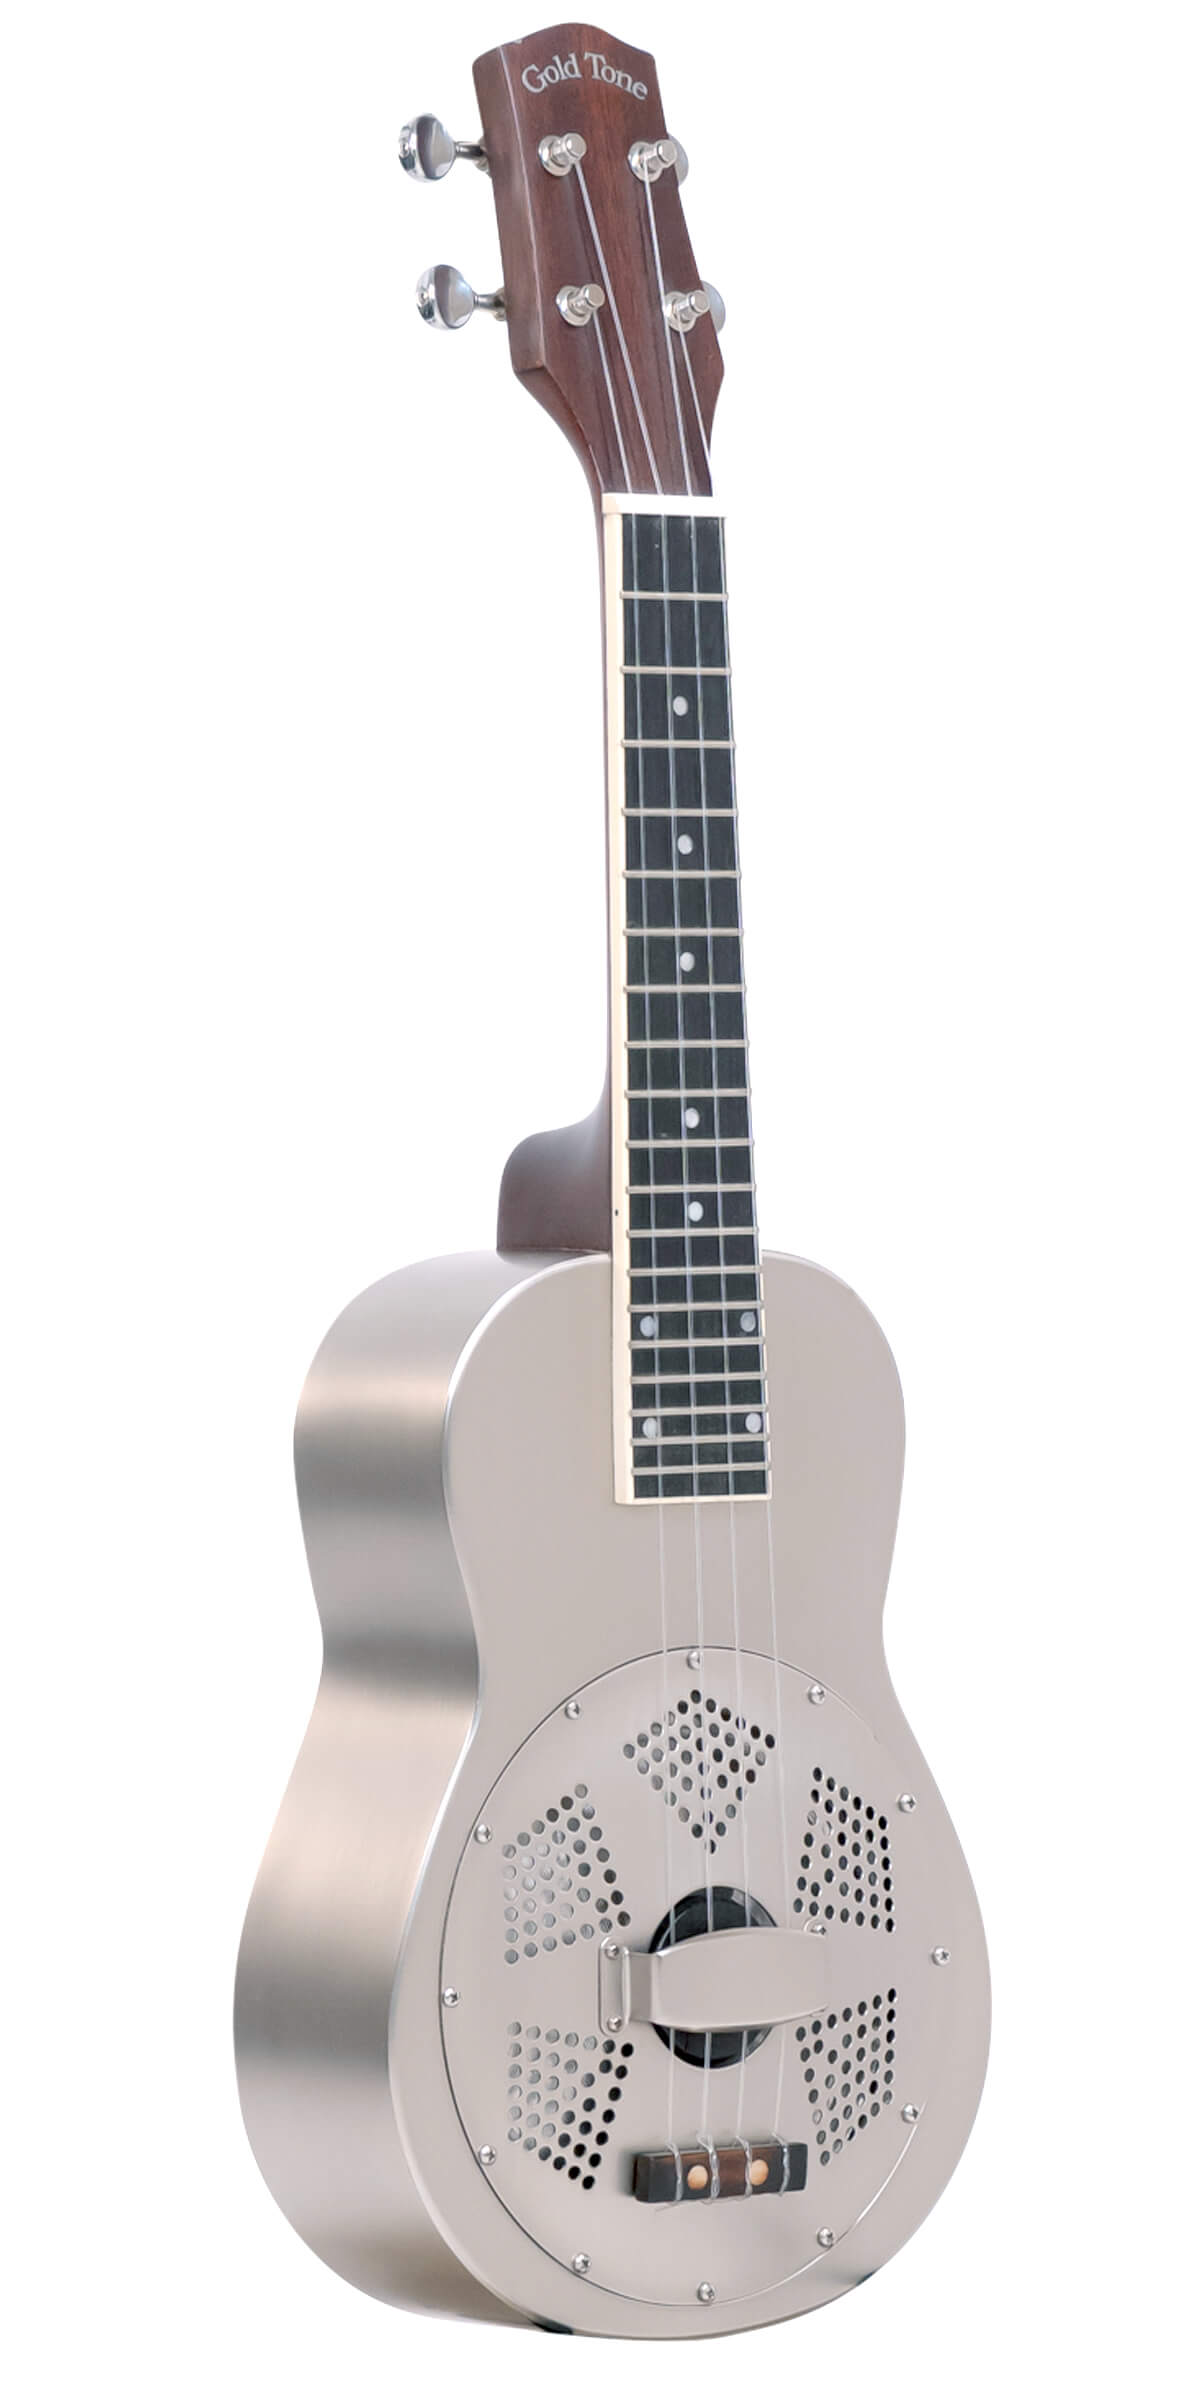 Resouke: Concert-Scale Metal Body Resonator Ukulele